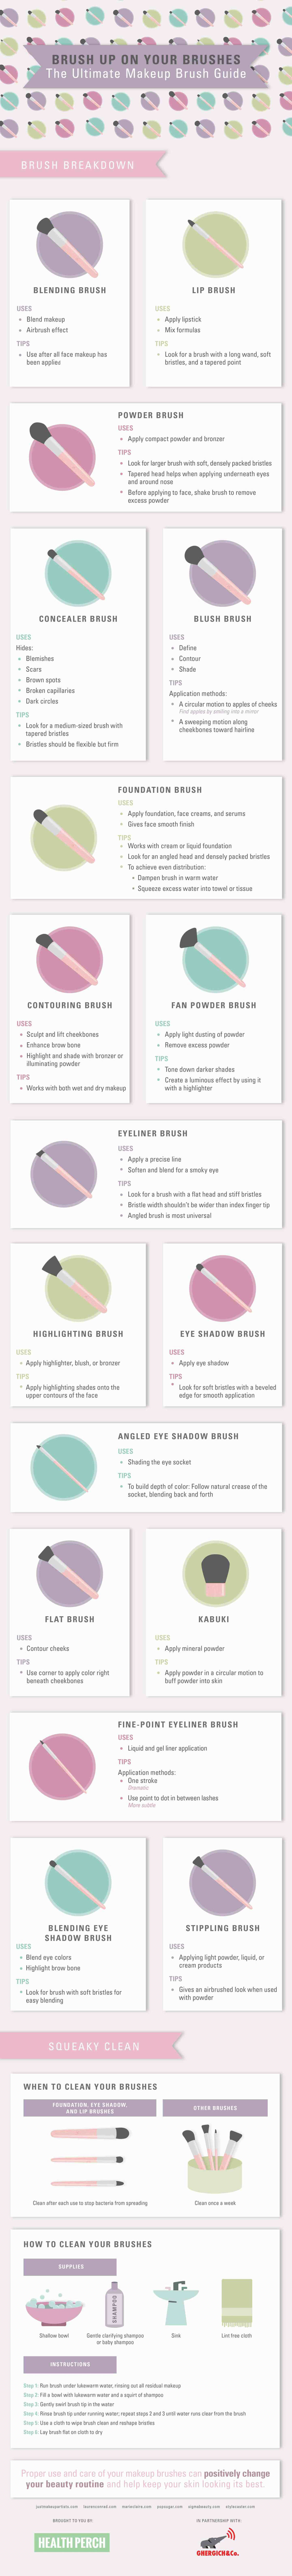 Brush Up on Your Brushes: The Ultimate Makeup Brush Guide Infographic